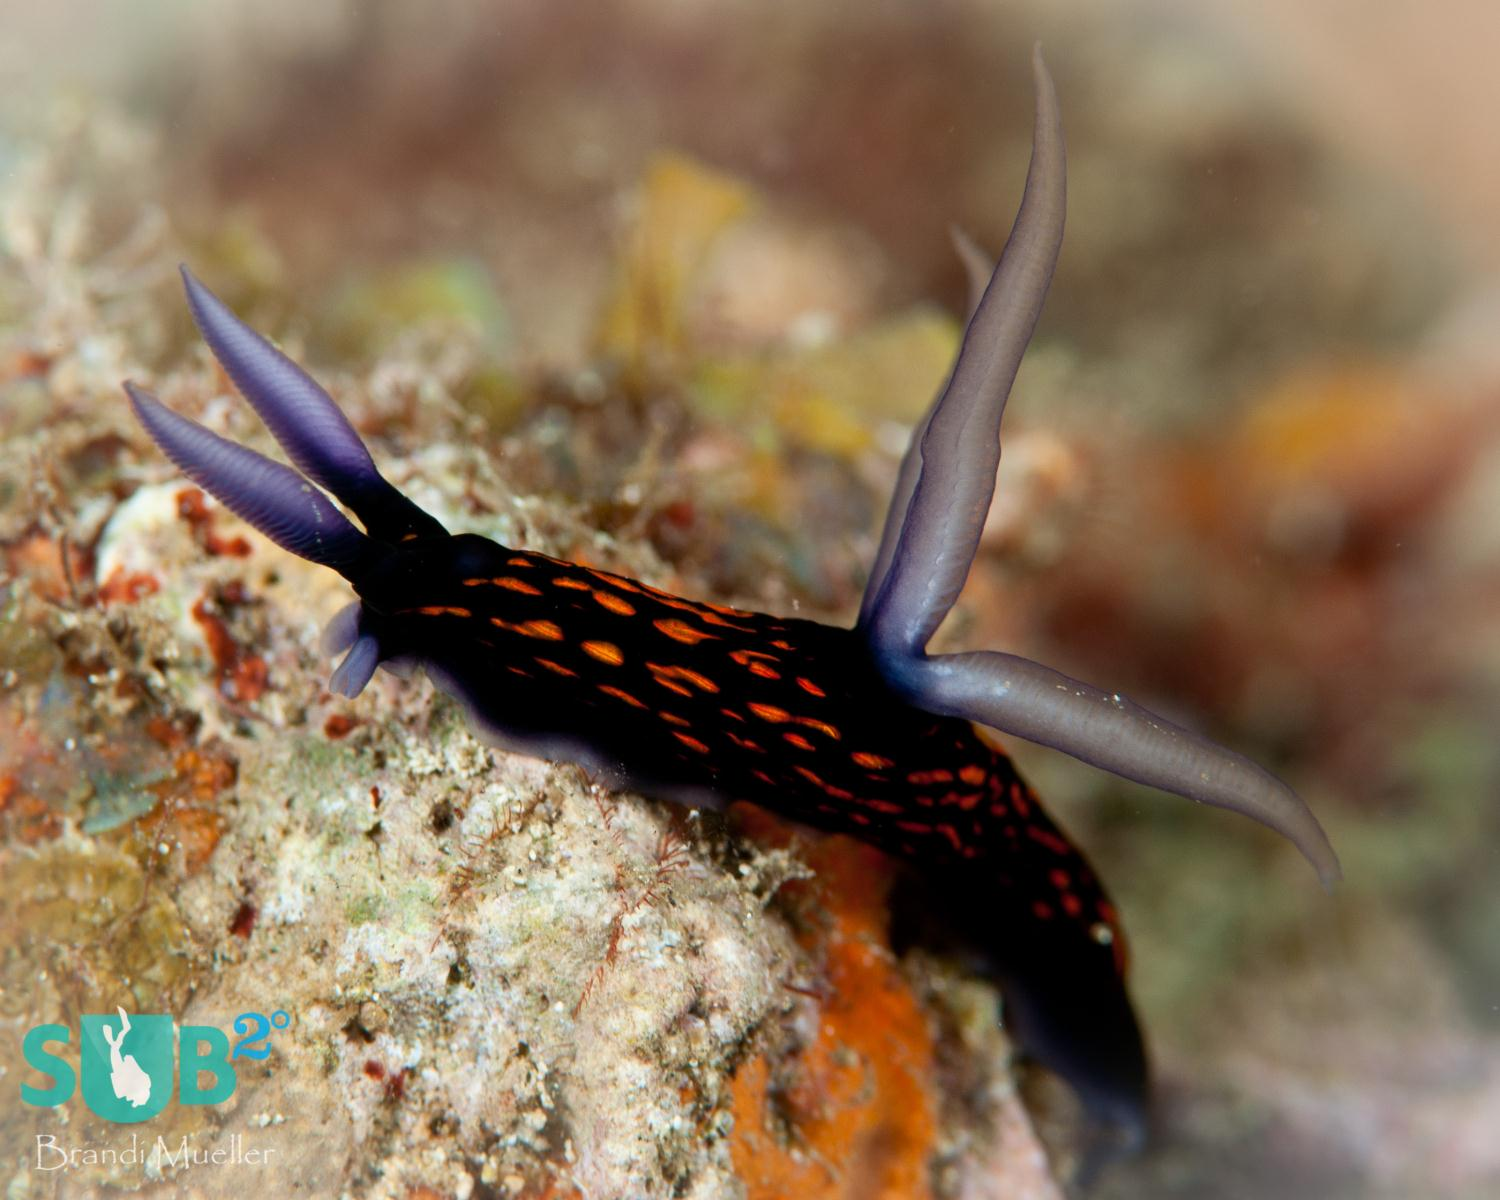 There are more than 3,000 known nudibranch species and they come in all different colors.  This one was seen in Papua New Guinea.